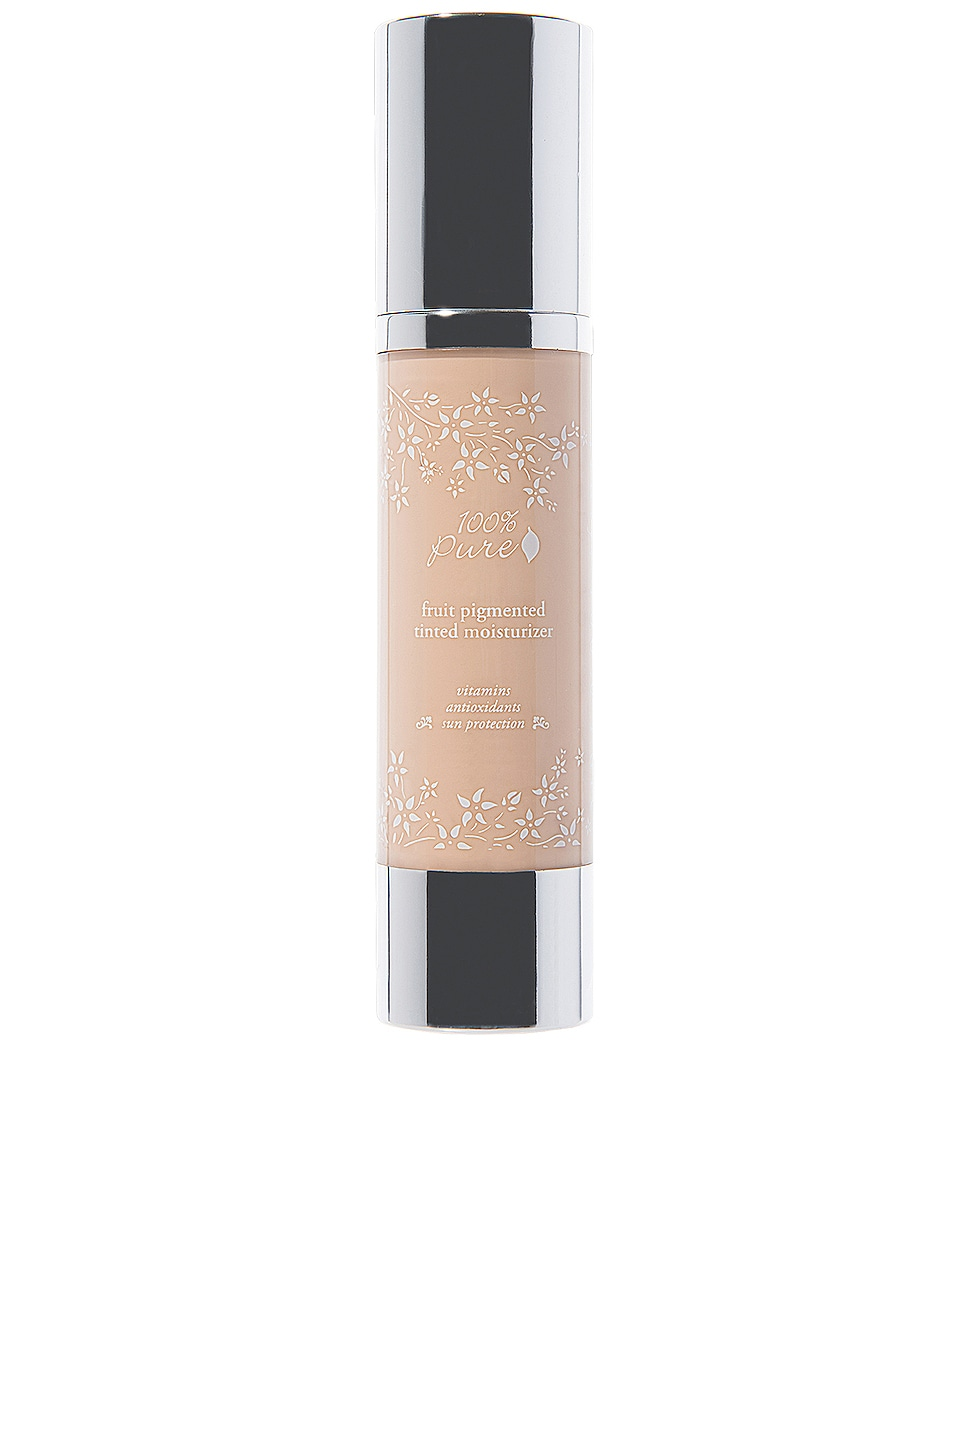 Tinted Moisturizer with Sun Protection